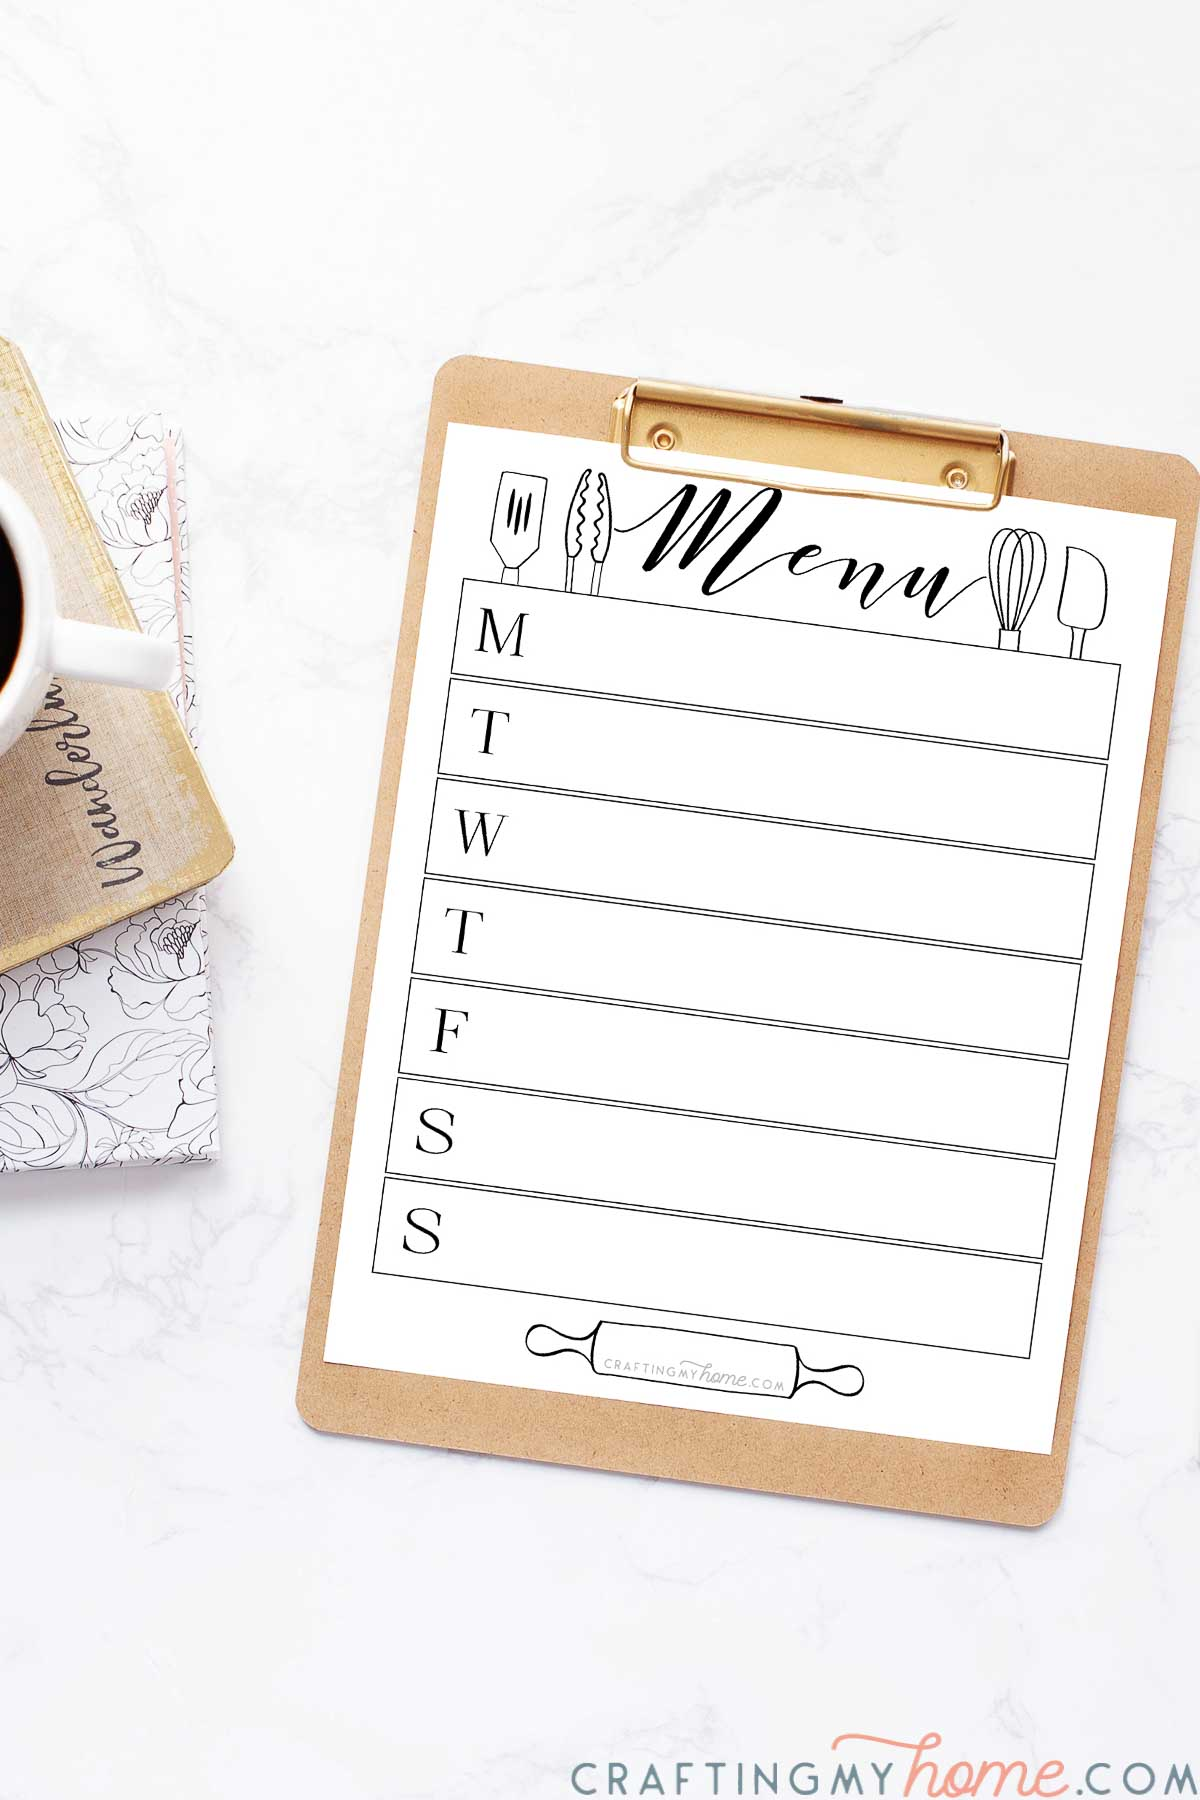 White printable menu board with utensil designs on it clipped to a clipboard next to a planner and cup of coffee.